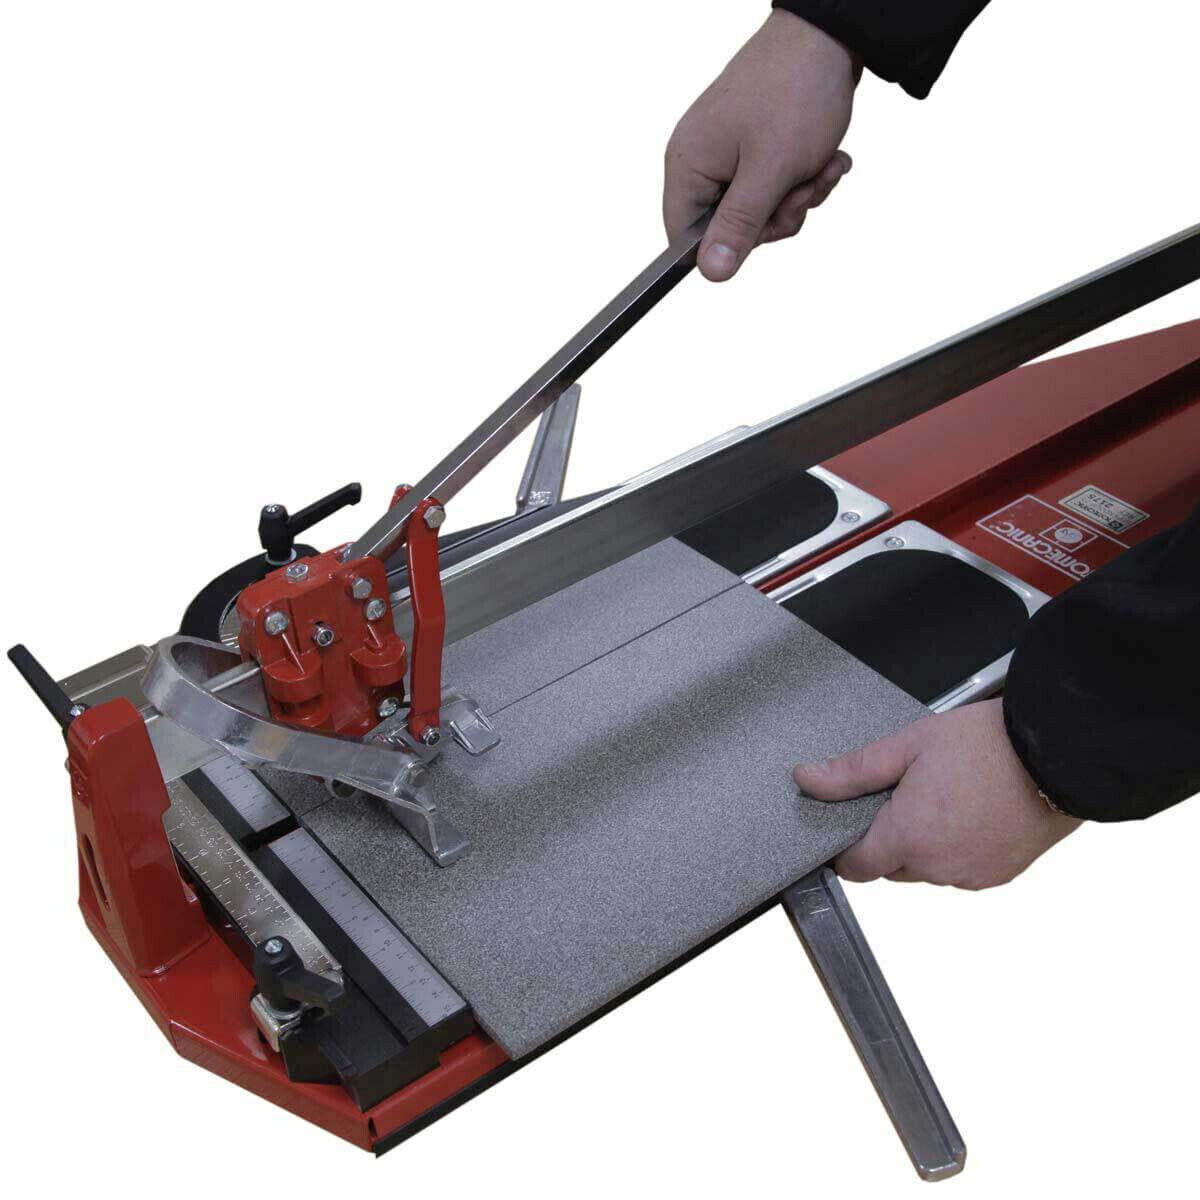 tomecanic ceramic tile cutter